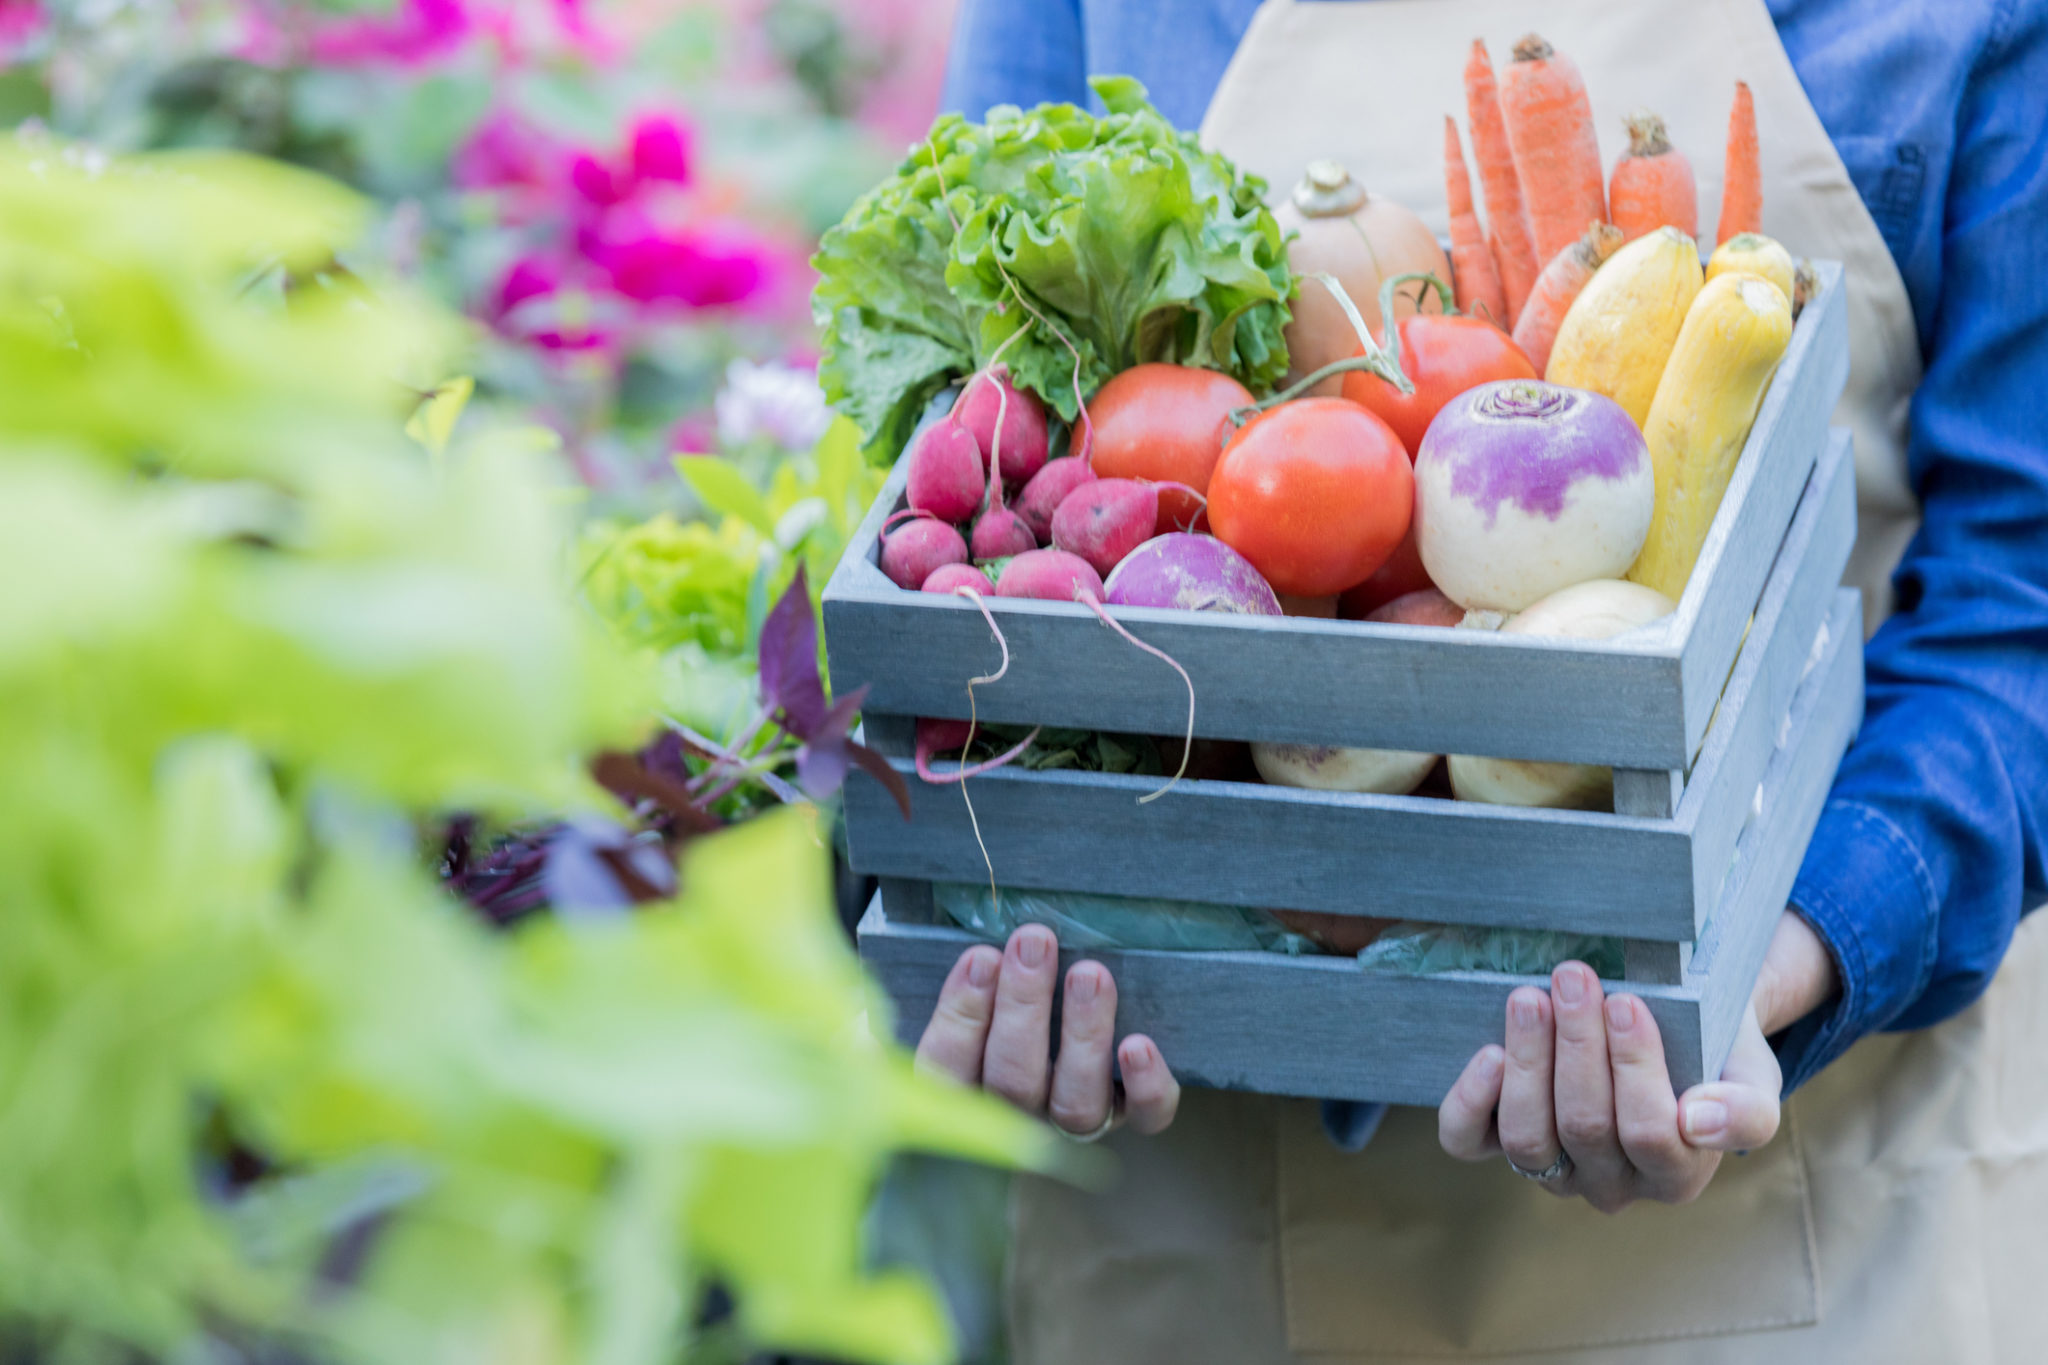 Unrecognizable woman holds basket of fresh veggies